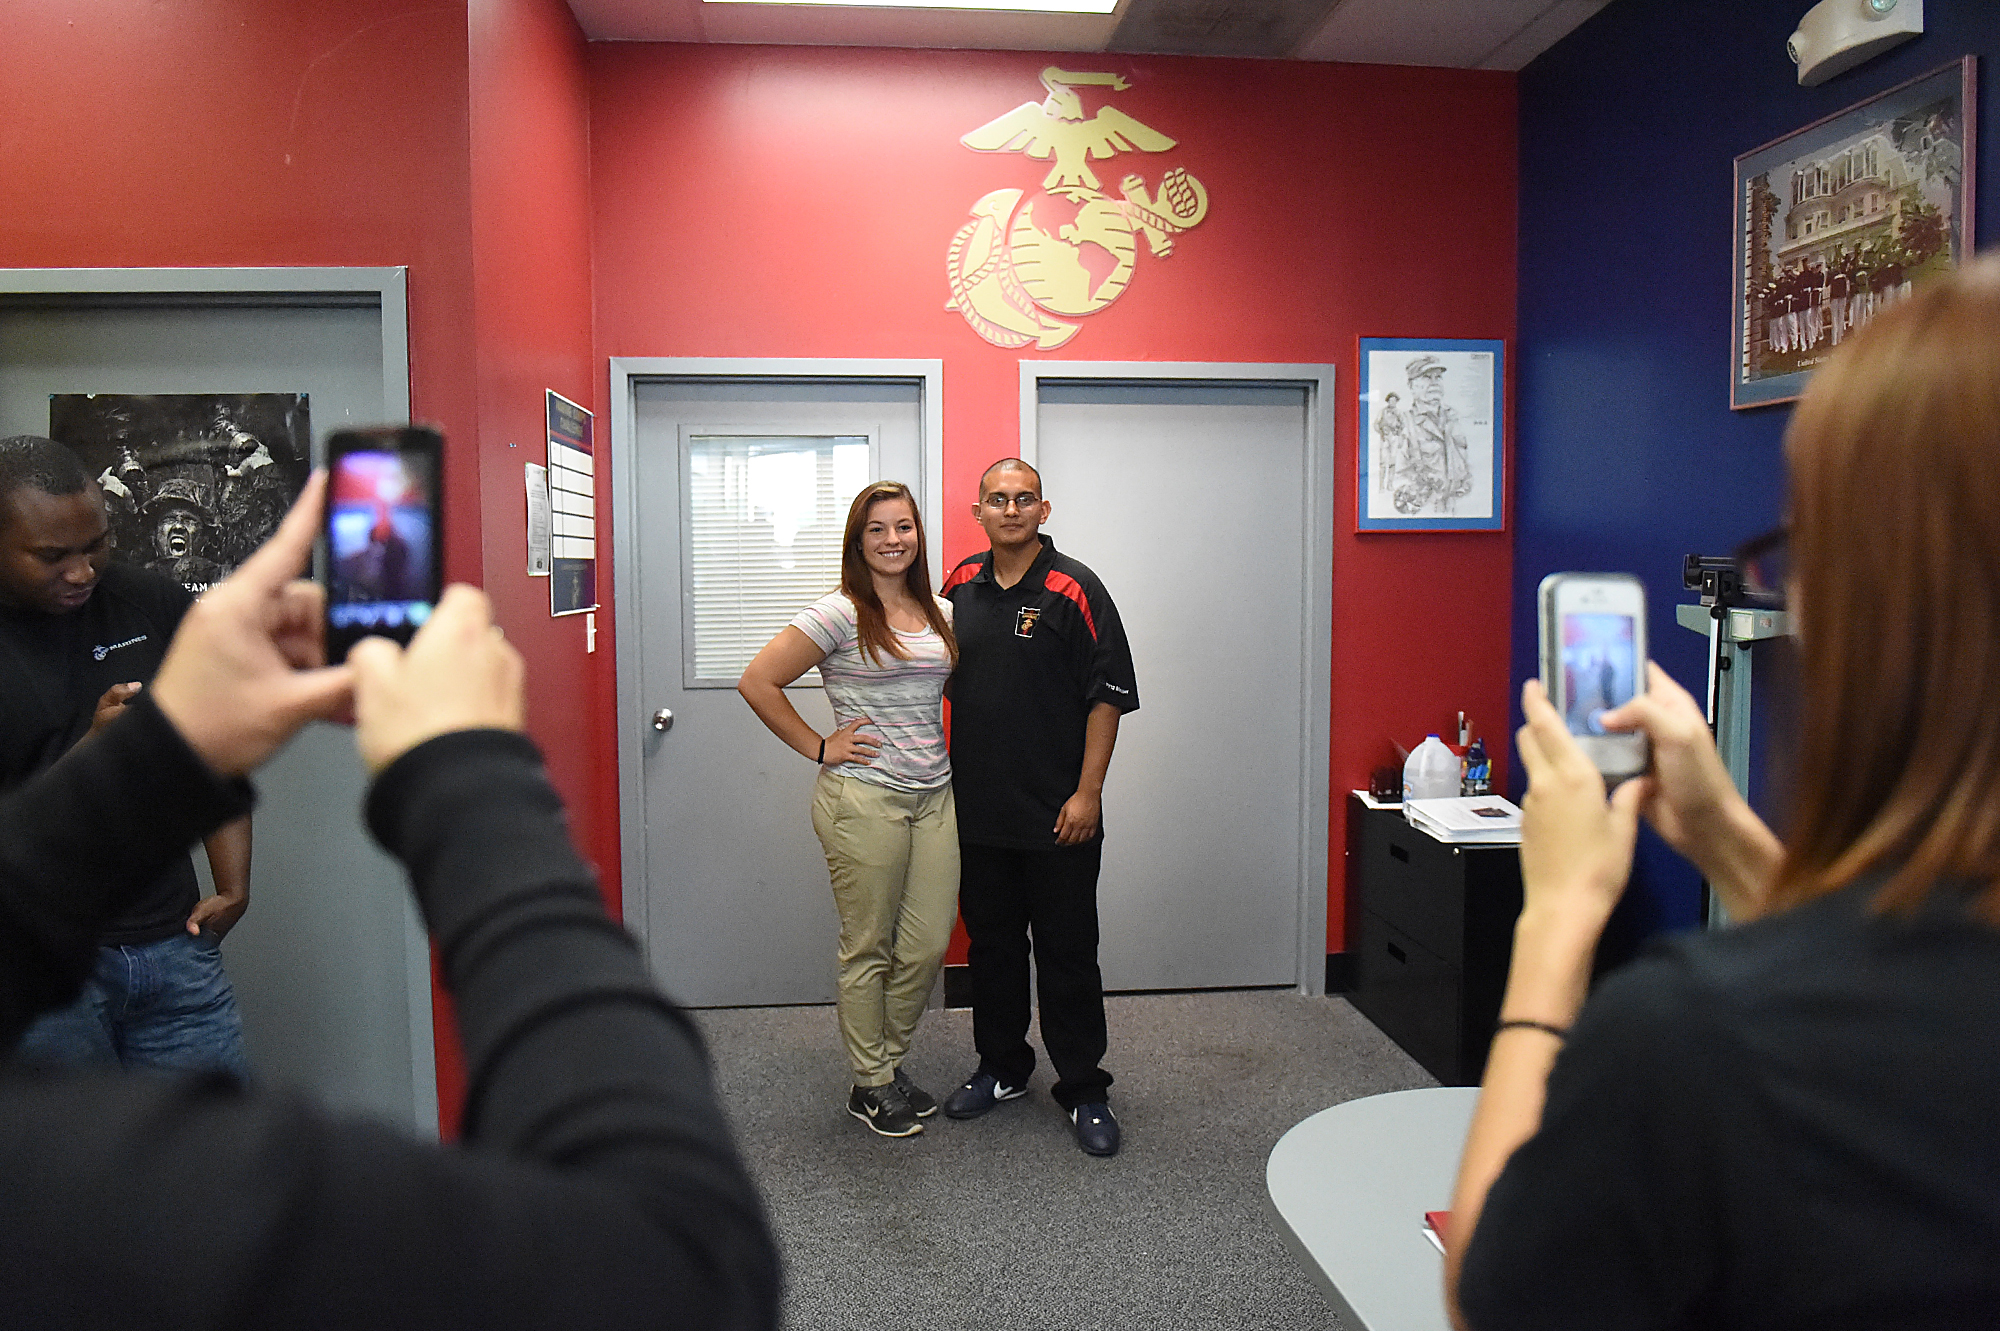 Dee Hubay poses for pictures with Sgt. Kevin Sanchez of the Marine Recruiting Sub Station Oxford Valley in Bristol Township (who has since switched stations) before leaving for boot camp at the US Marine Corps Recruiting station on Cottman Avenue in Philadelphia on Sunday, August 23, 2015.